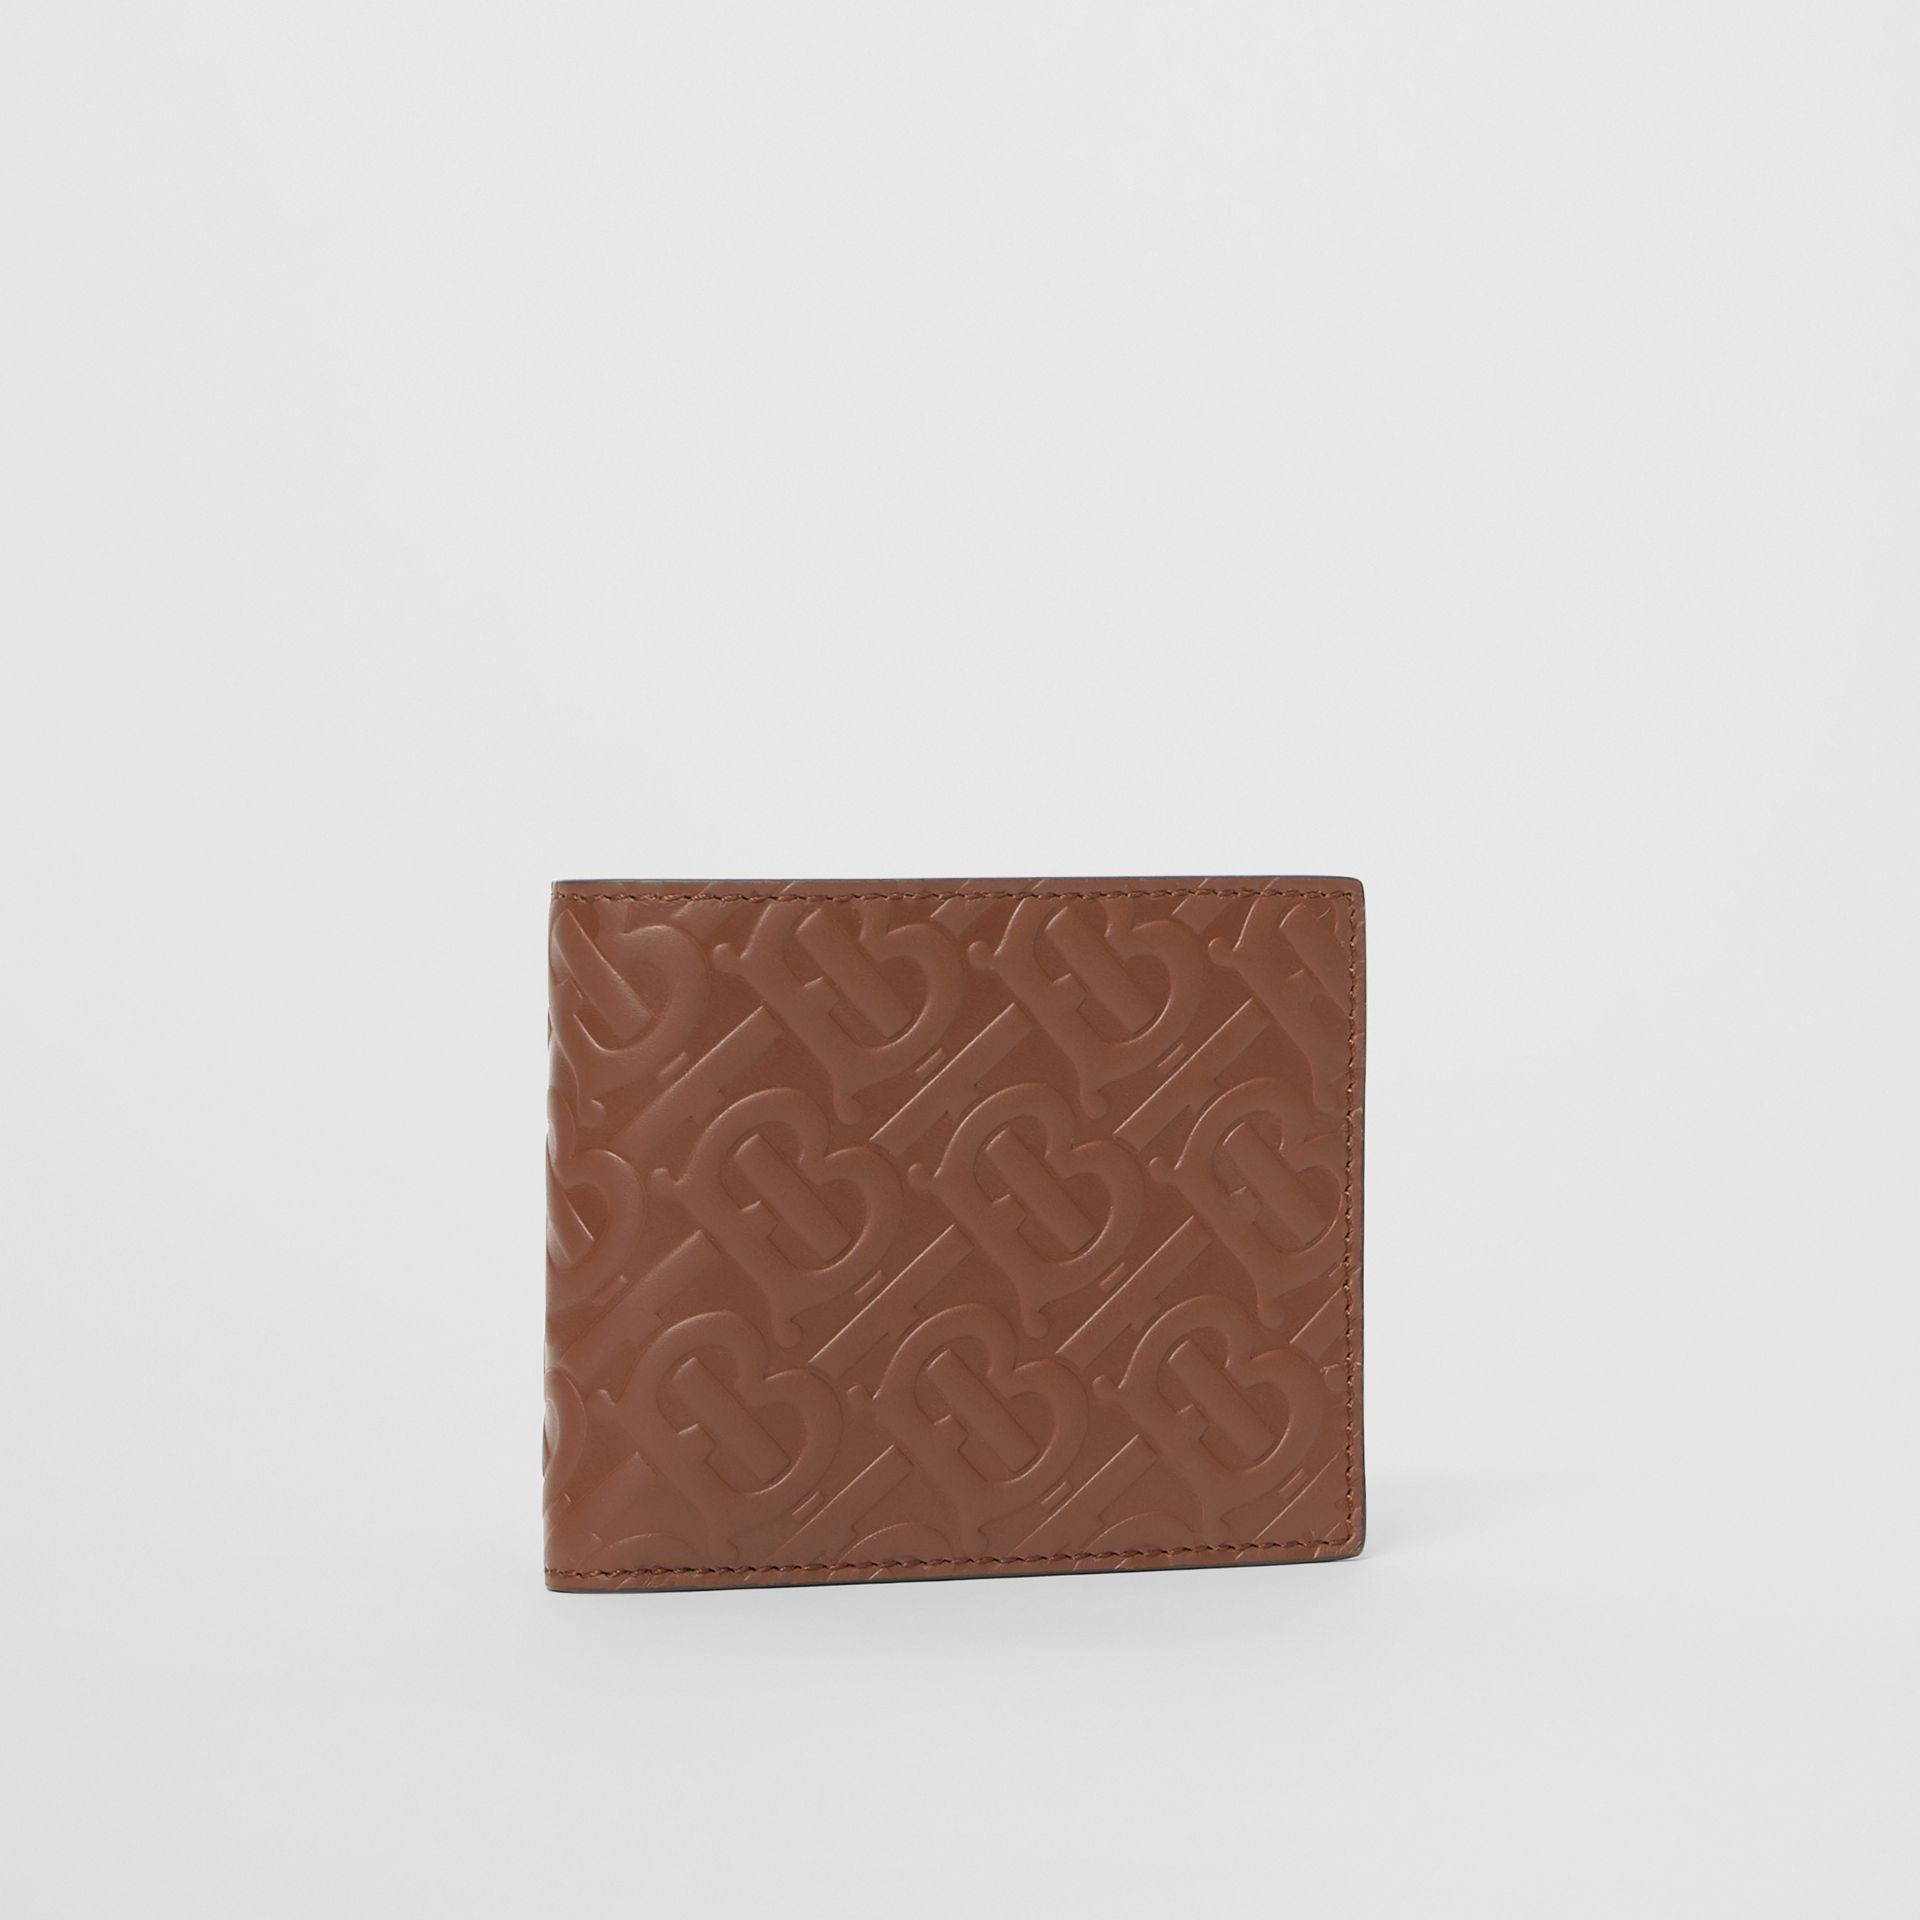 Monogram Leather International Bifold Wallet in Dark Tan - Men | Burberry - gallery image 3